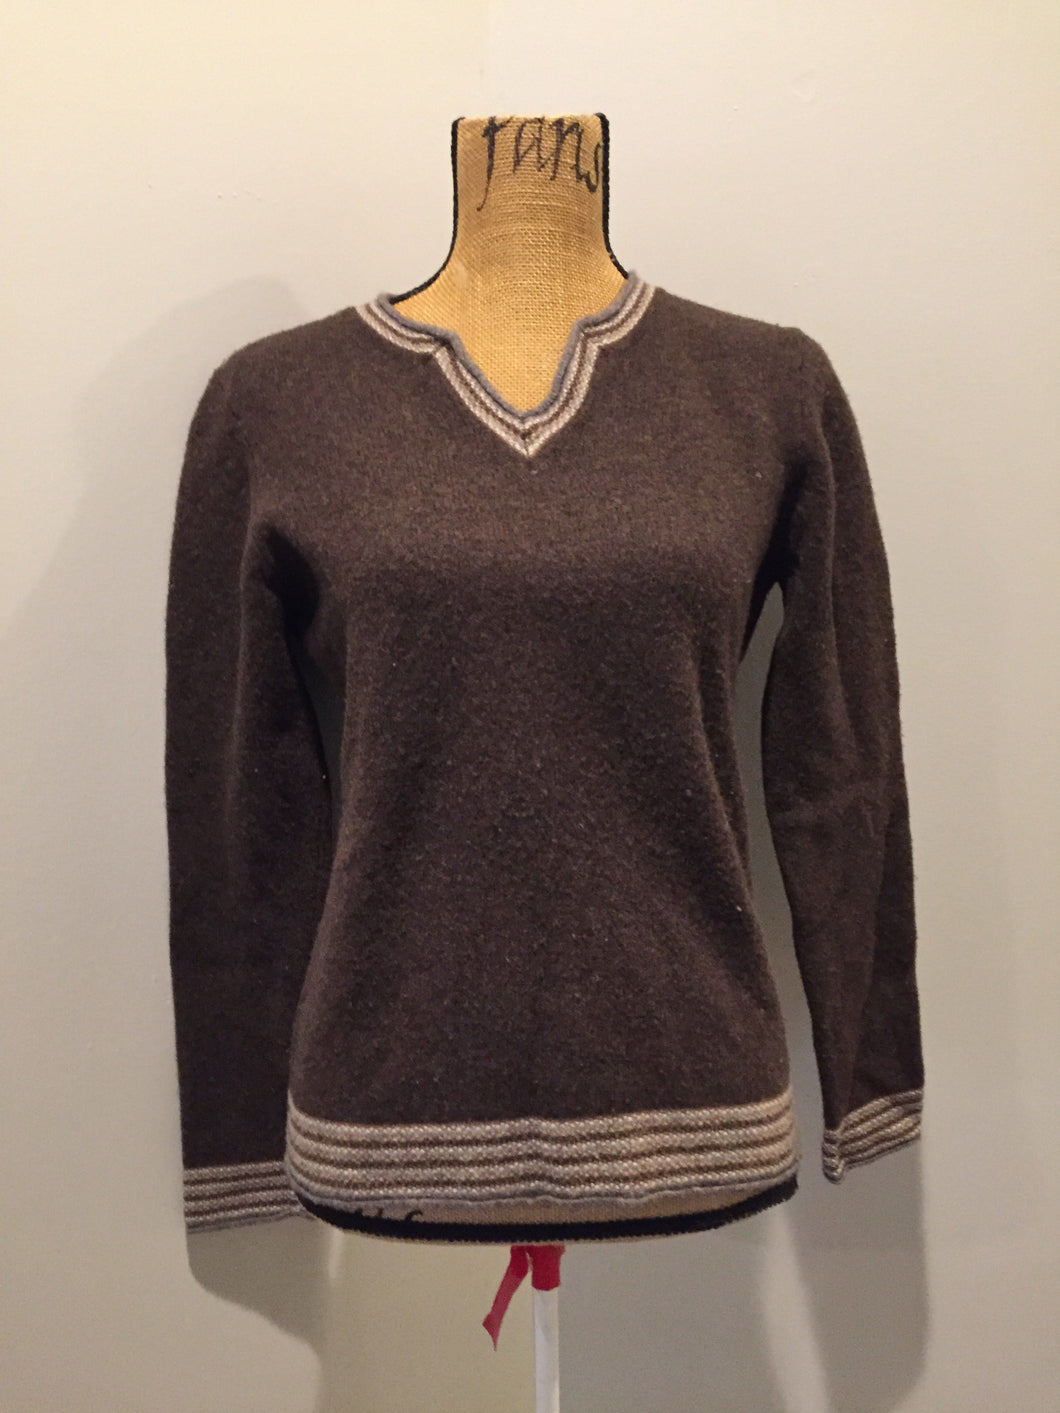 Kingspier Vintage - Patagonia brown and white wool sweater. Size large.